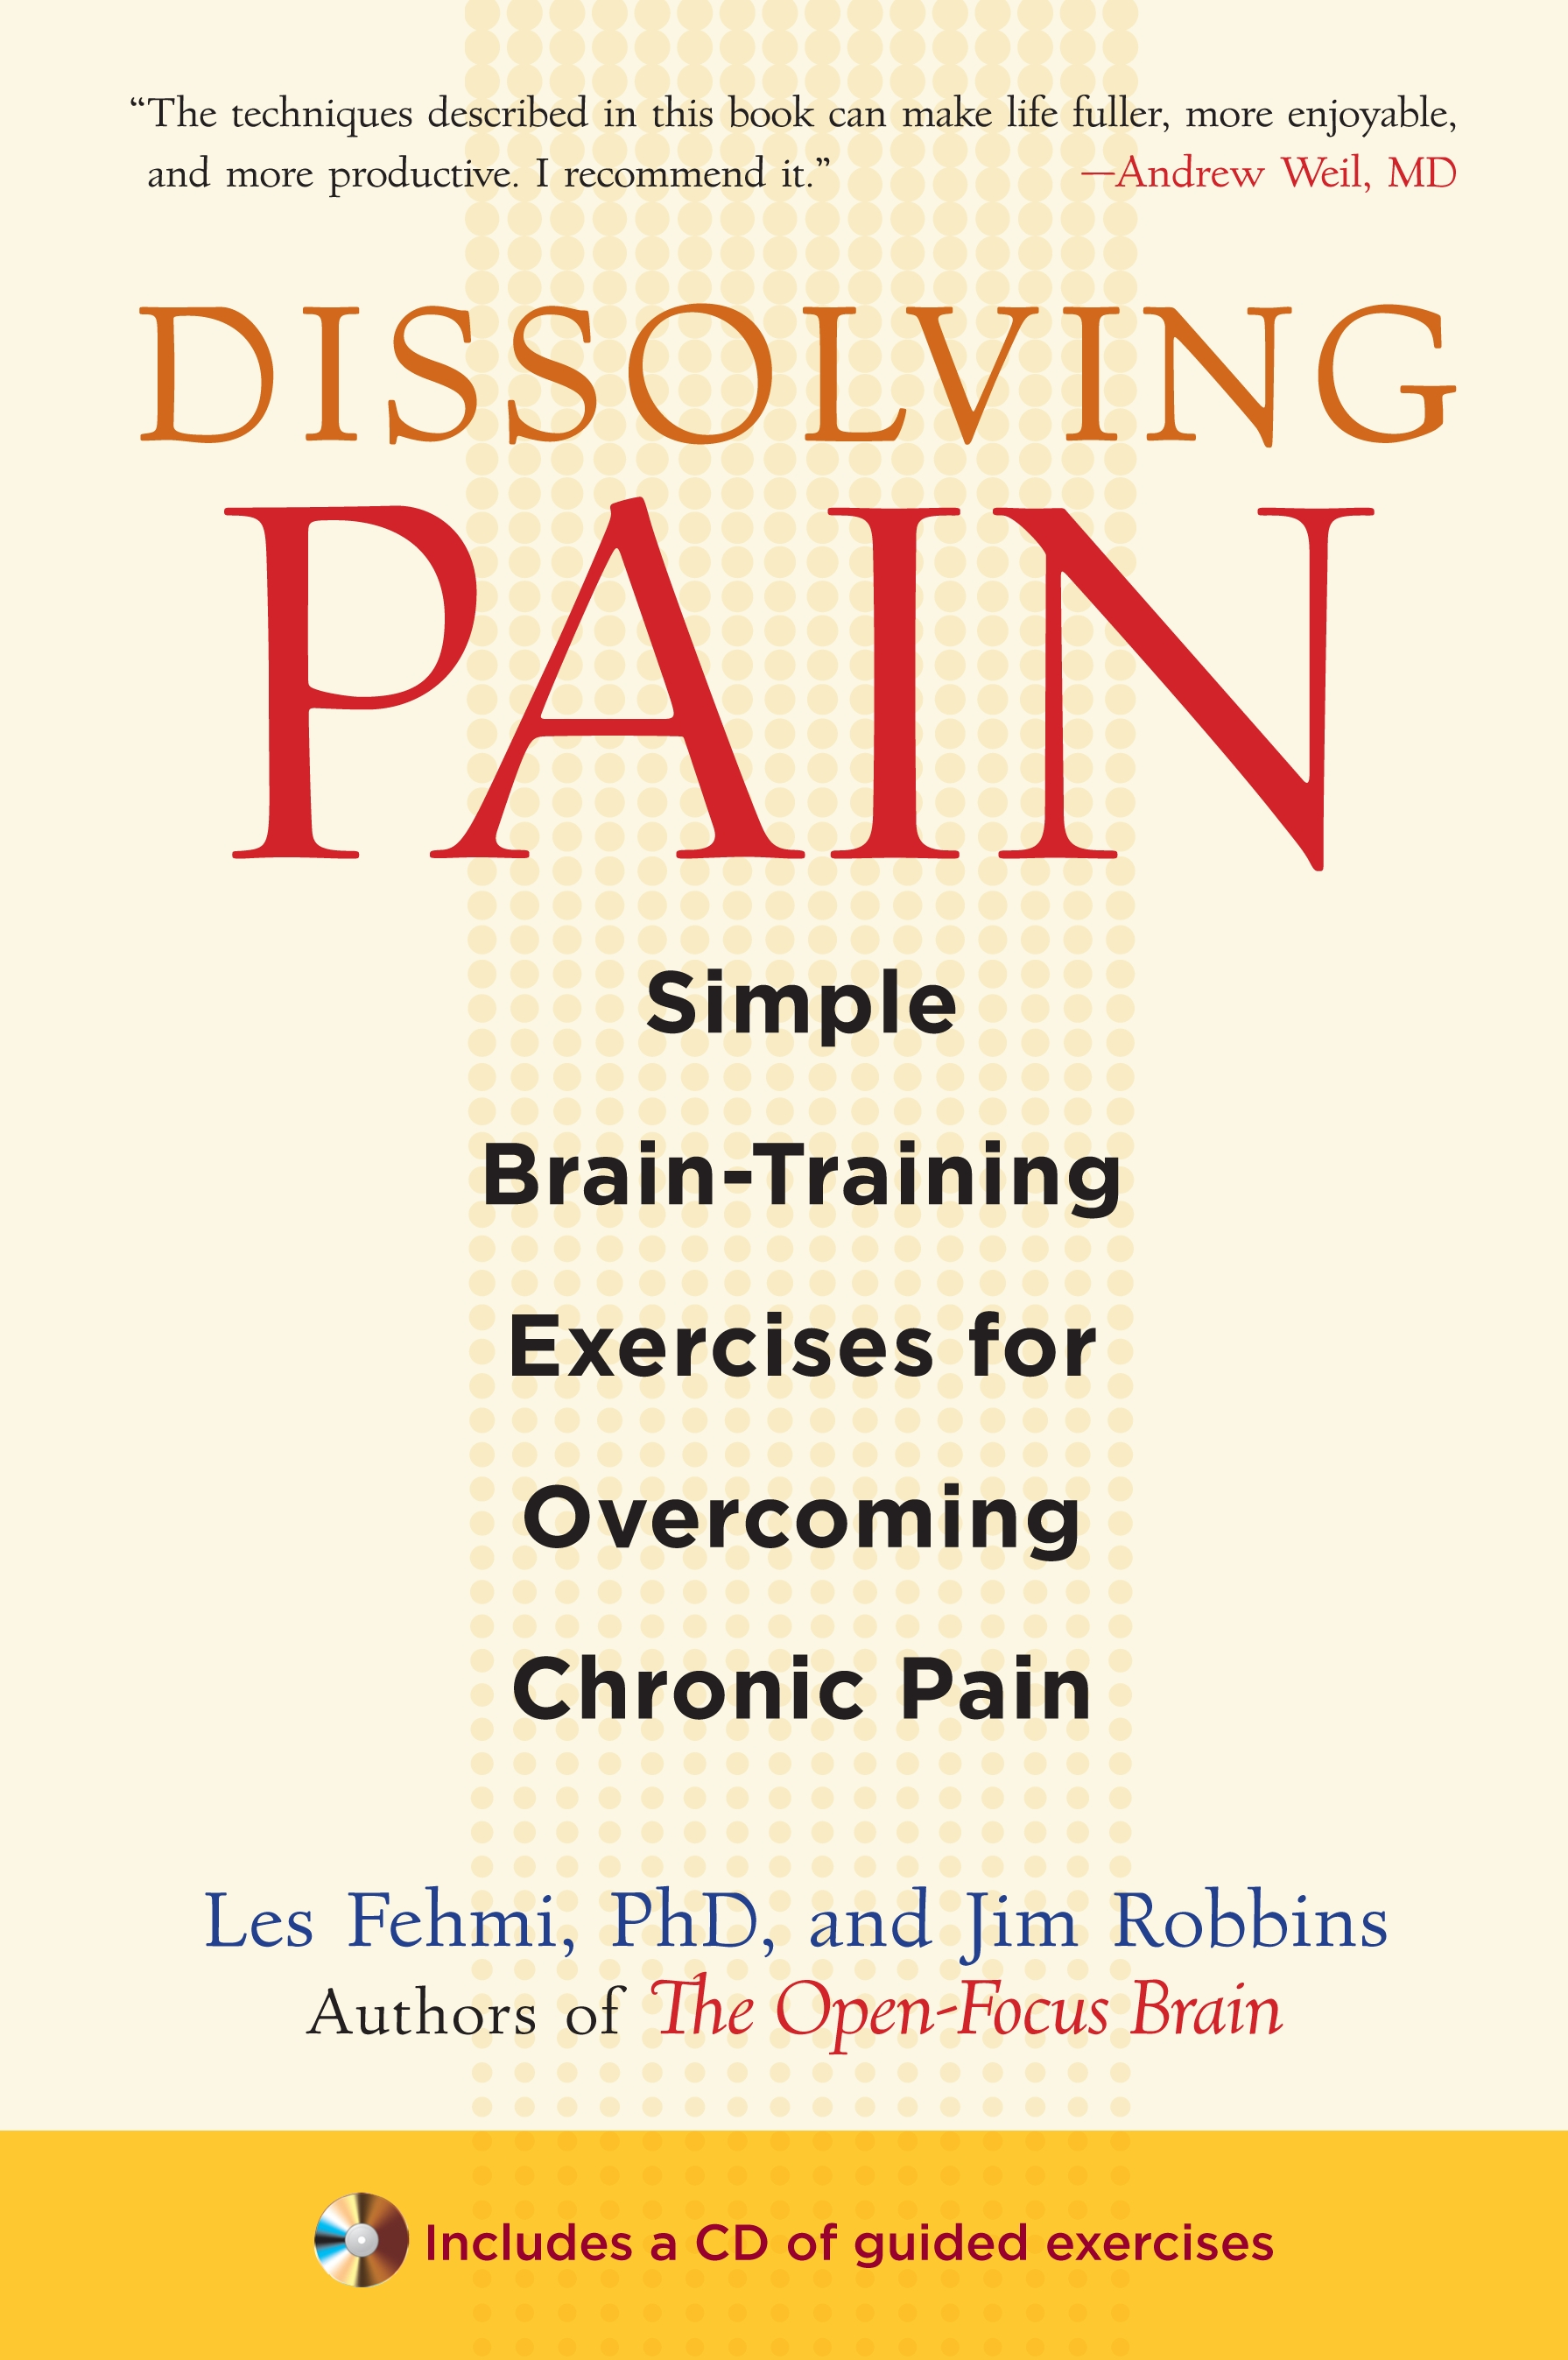 Dissolving Pain: Simple Brain-Training Exercises for Overcoming Chronic Pain By: Jim Robbins,Les Fehmi